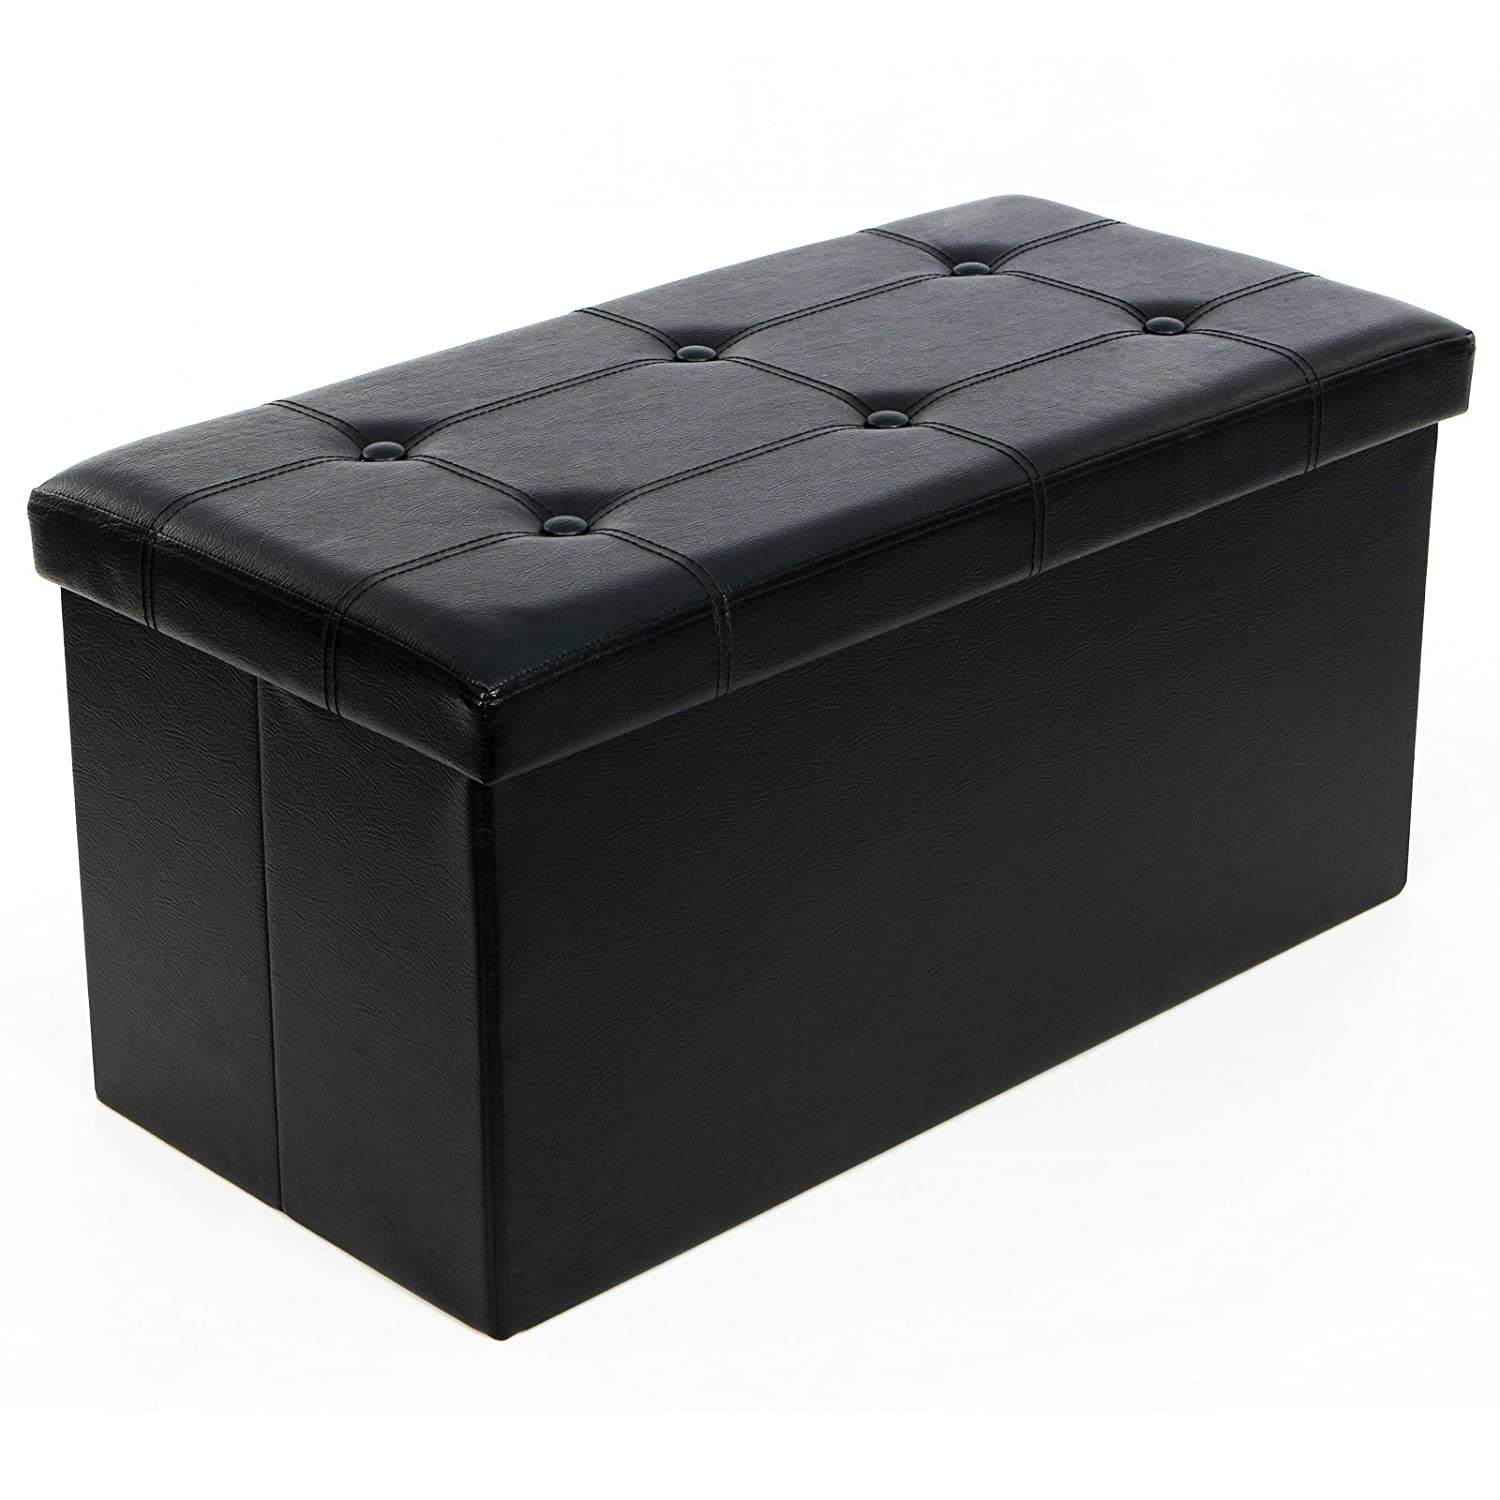 SONGMICS Folding Storage Ottoman. - Storage Ottoman Amazon.com